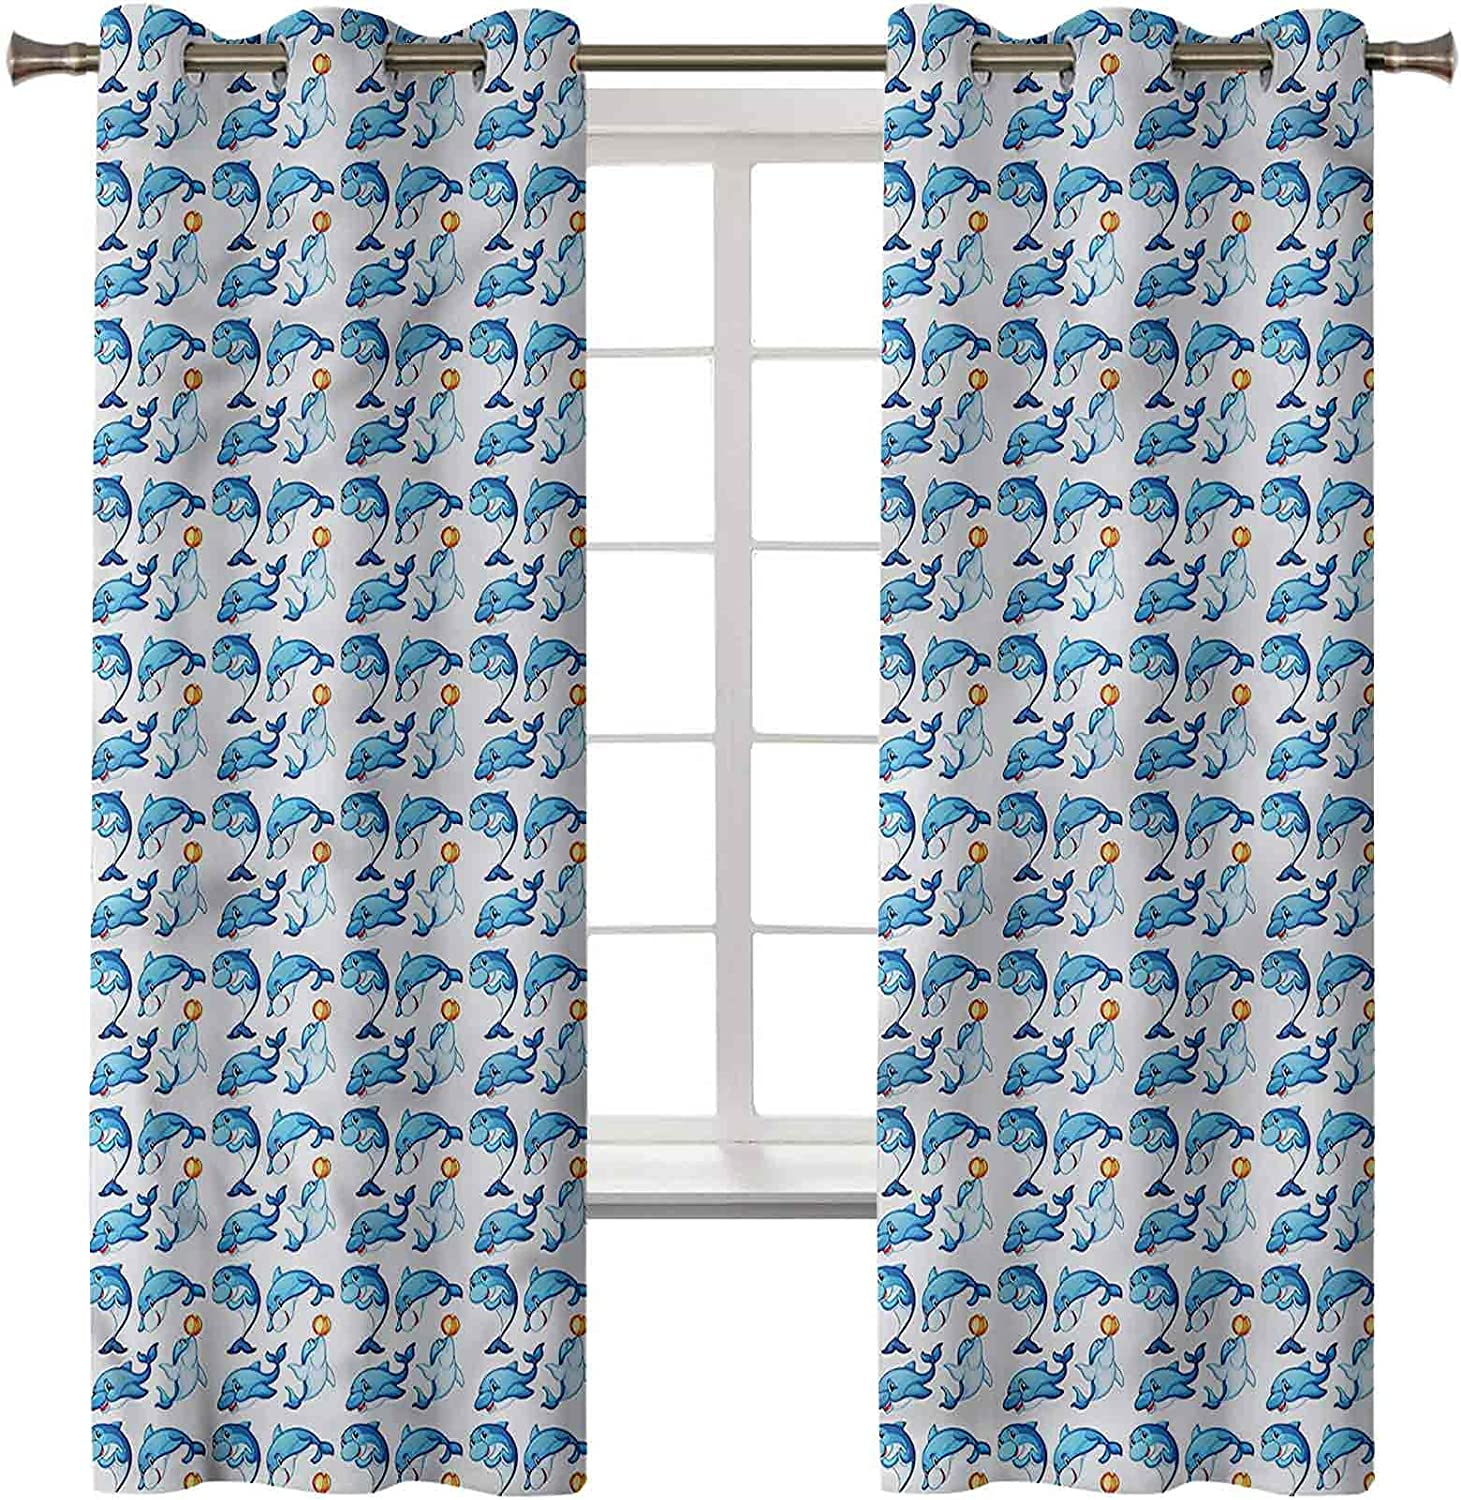 3D Printed Blackout Curtains Thermal Sales for sale Drapes Insulated Sacramento Mall Noise Red